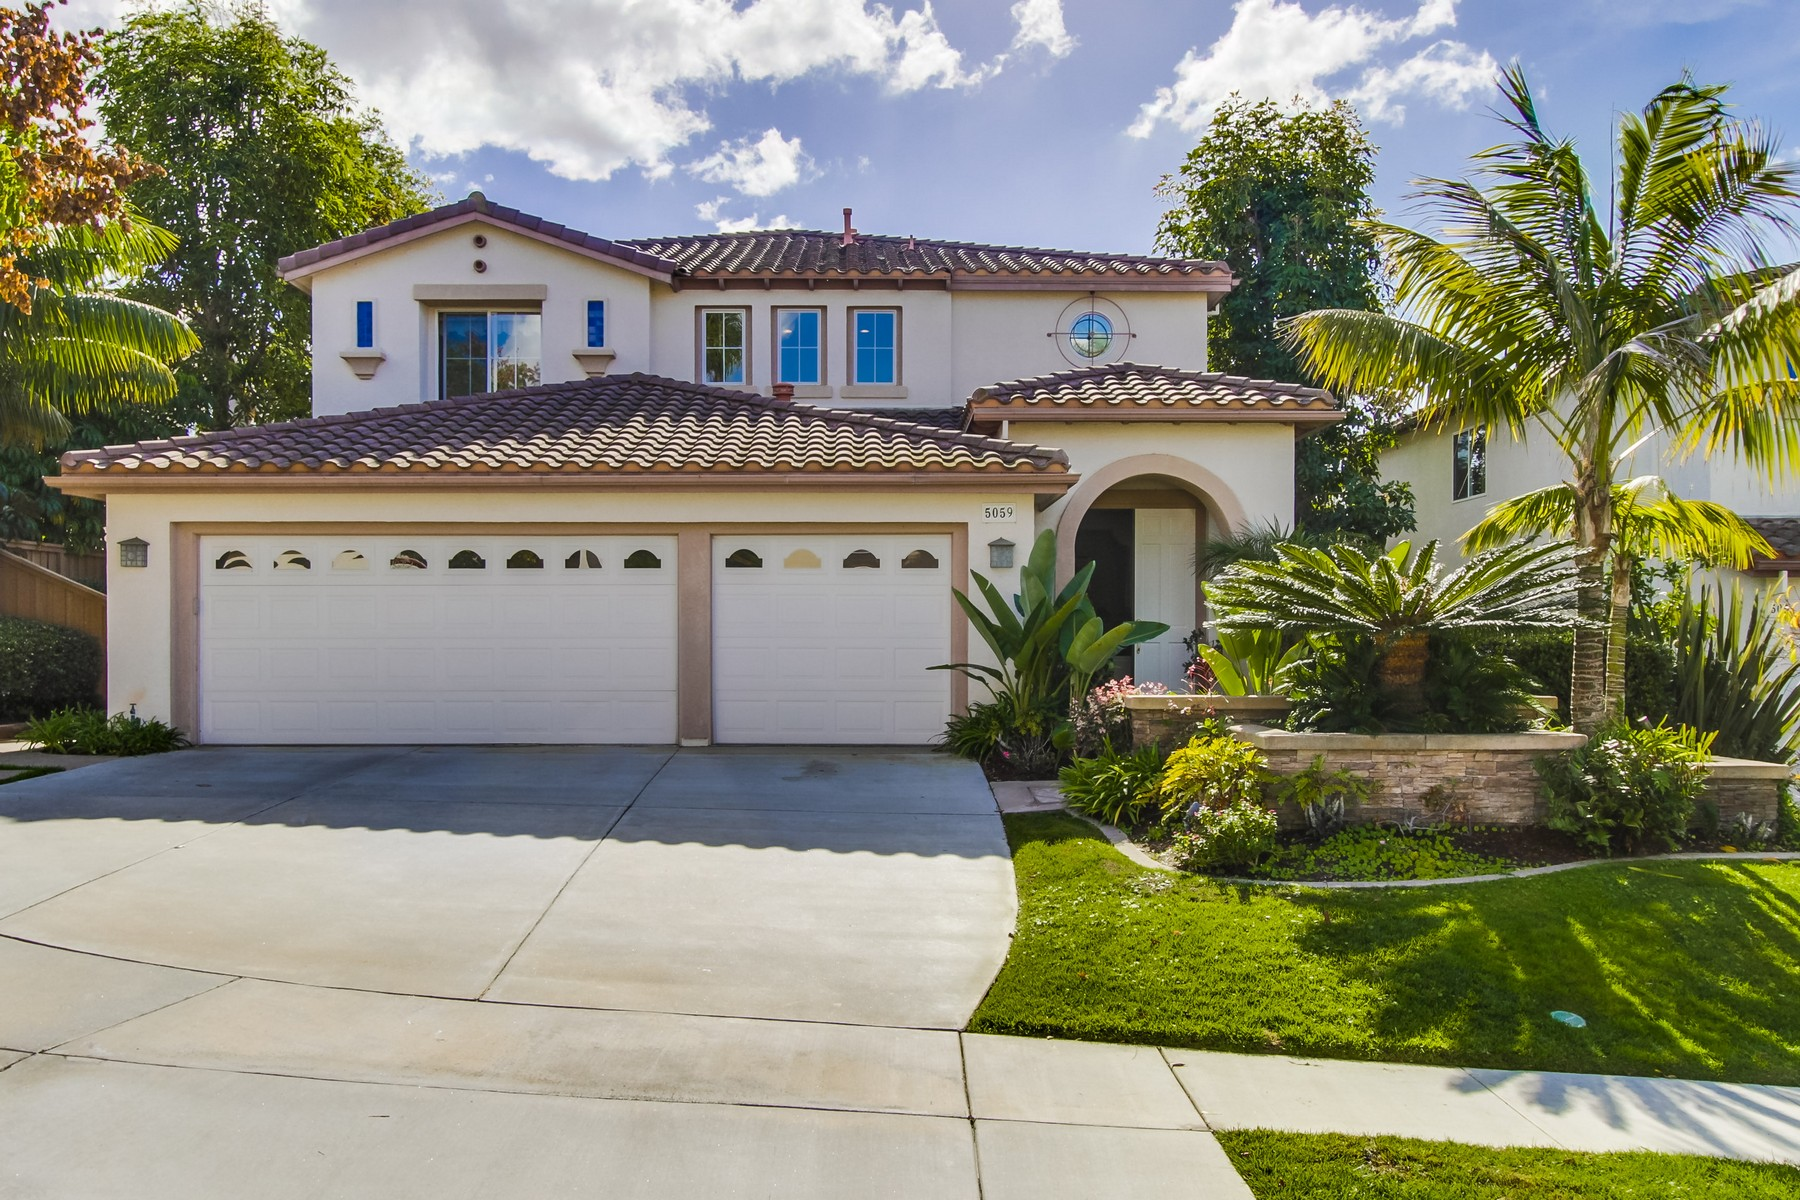 Single Family Home for Sale at Del Mar East/ Carmel Country Highlands 5059 Sterling Grove Lane Carmel Valley, San Diego, California 92130 United States